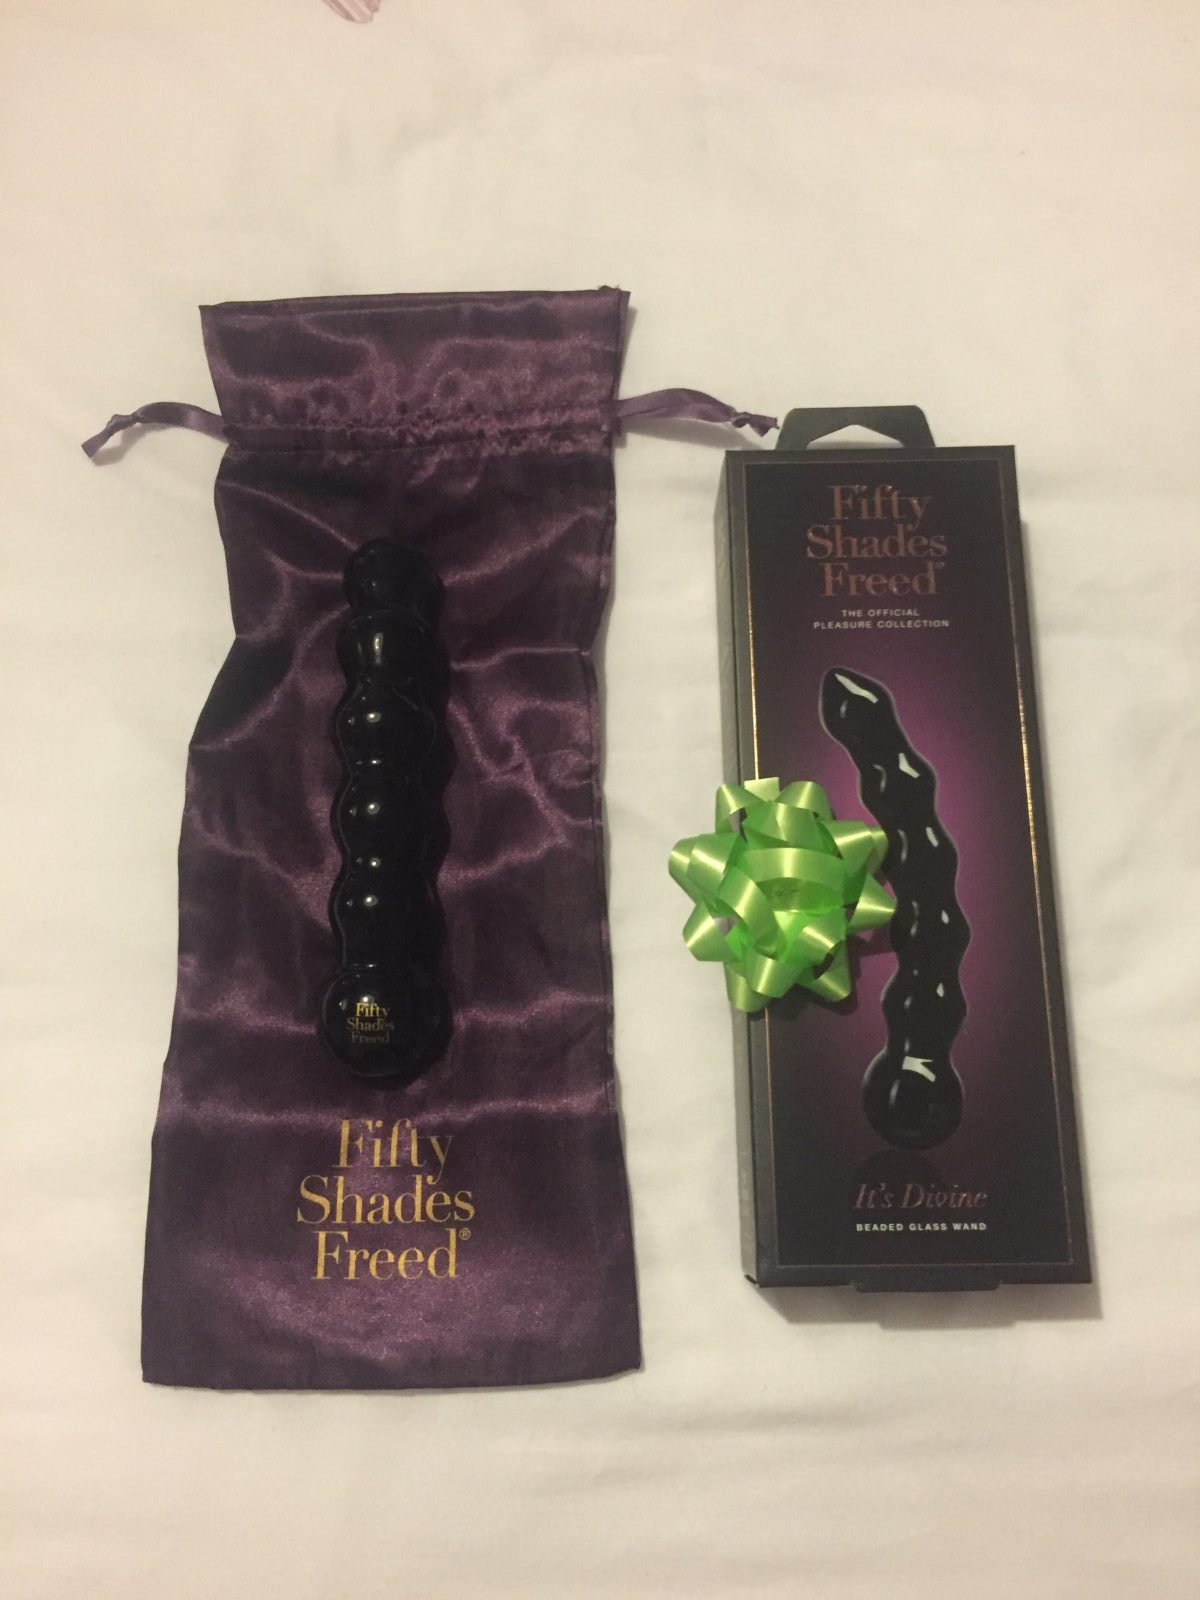 Luv Bunny's One Year Blogiversary: Win a Fifty Shades Freed It's Divine Black Glass Beaded Dildo